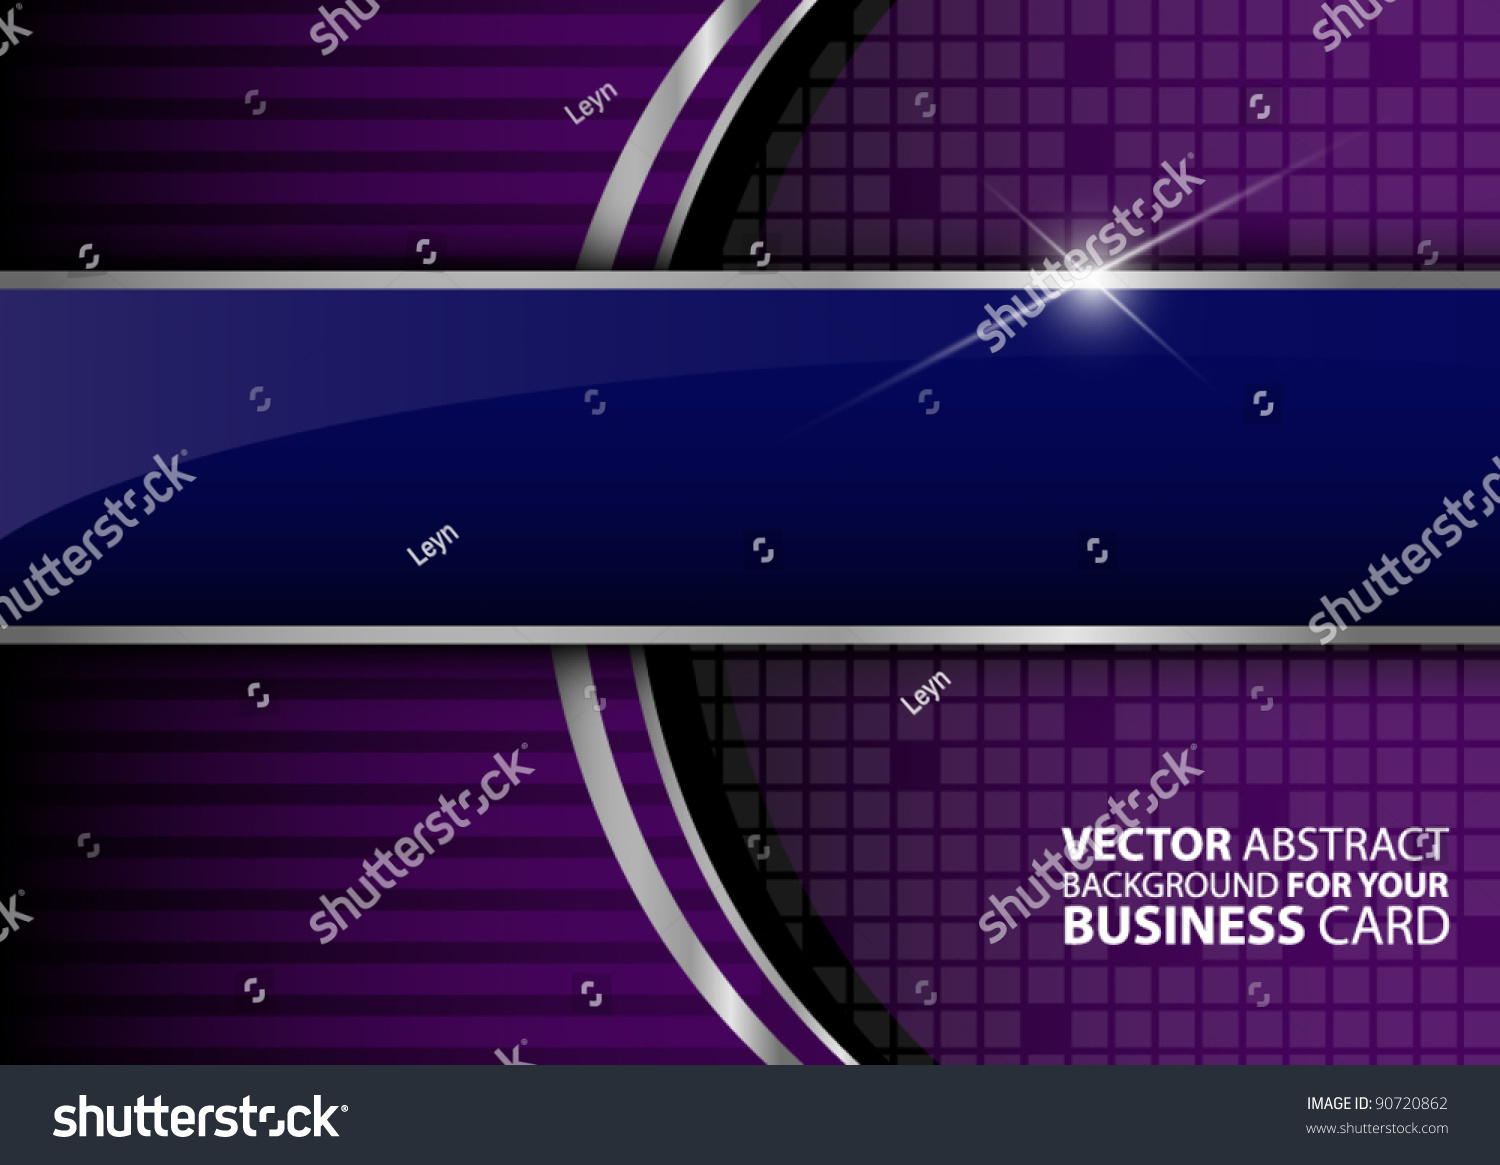 Business Background Your Business Card Stock Vector